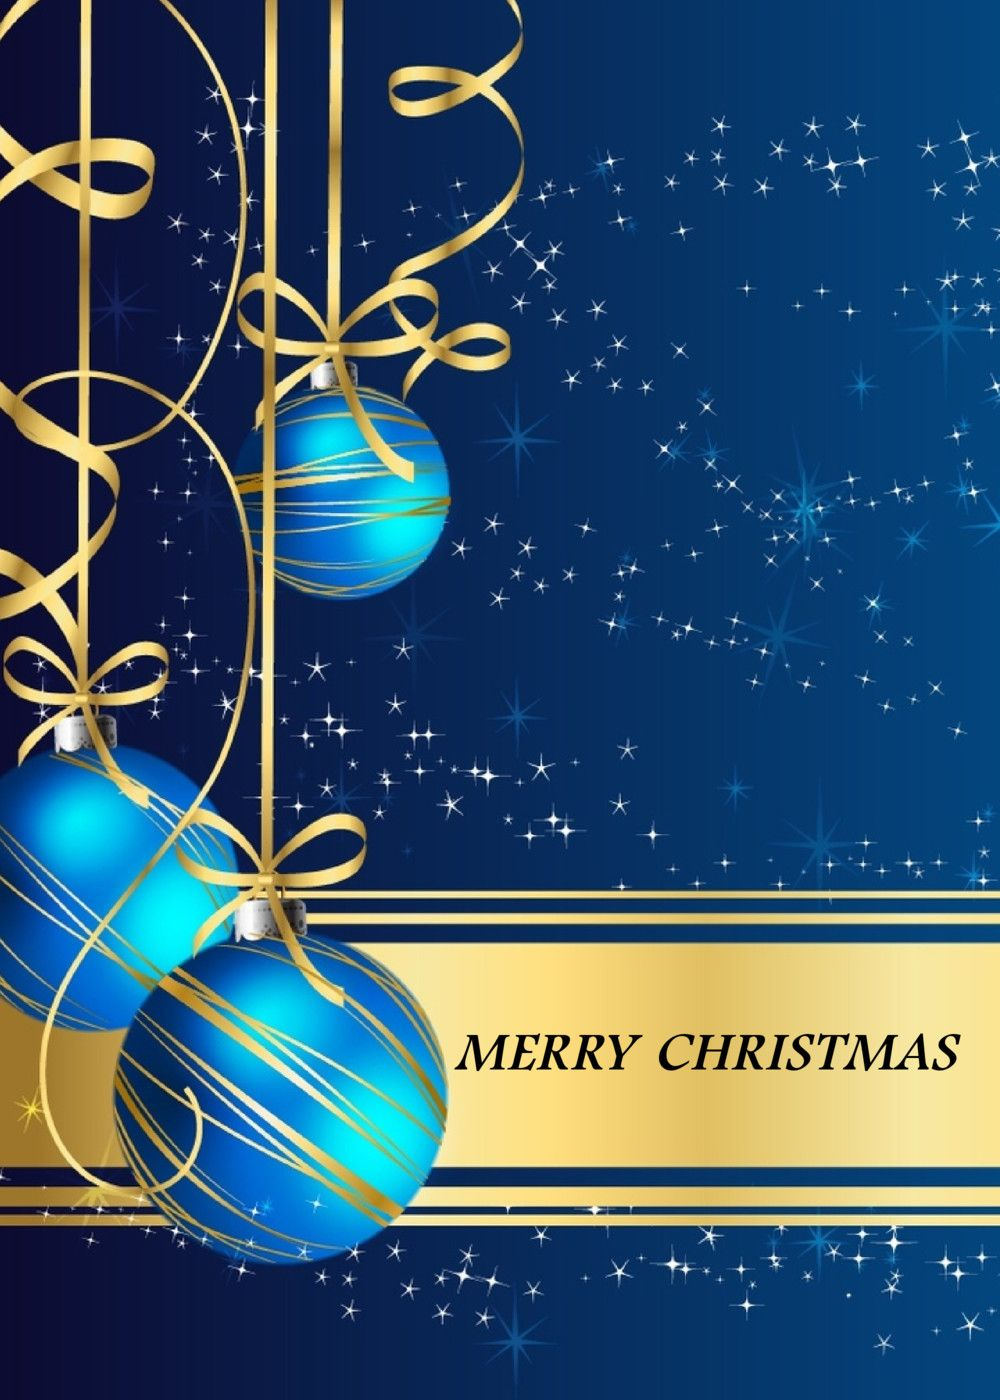 Best Wishes To You And Your Family During This Holiday Season Send